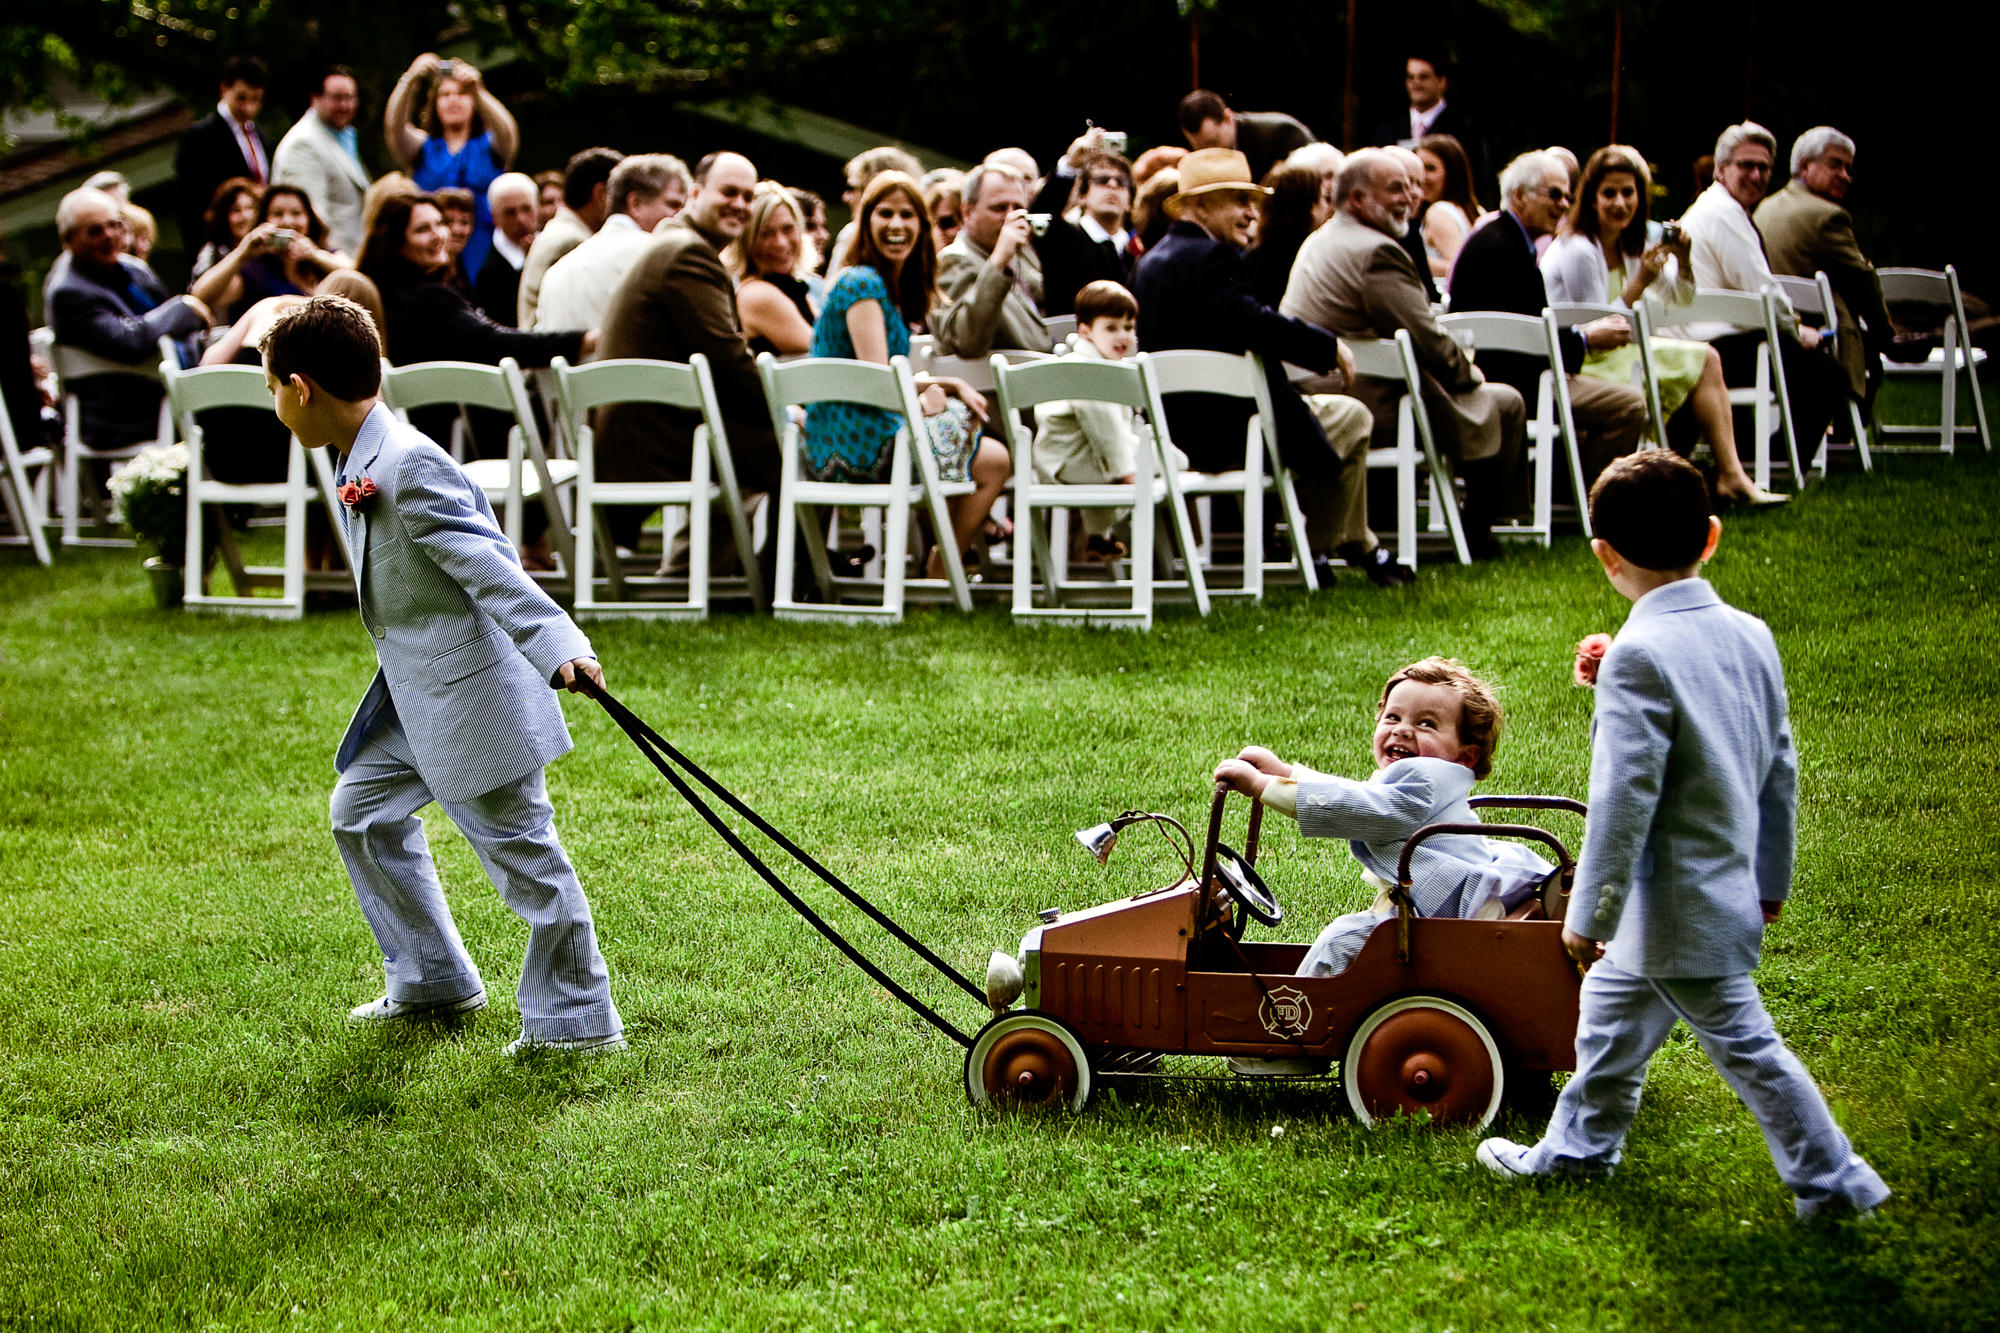 Ringbearers wearing blue seersucker suits pull toddler in toy car to ceremony - photo by Jag Studios